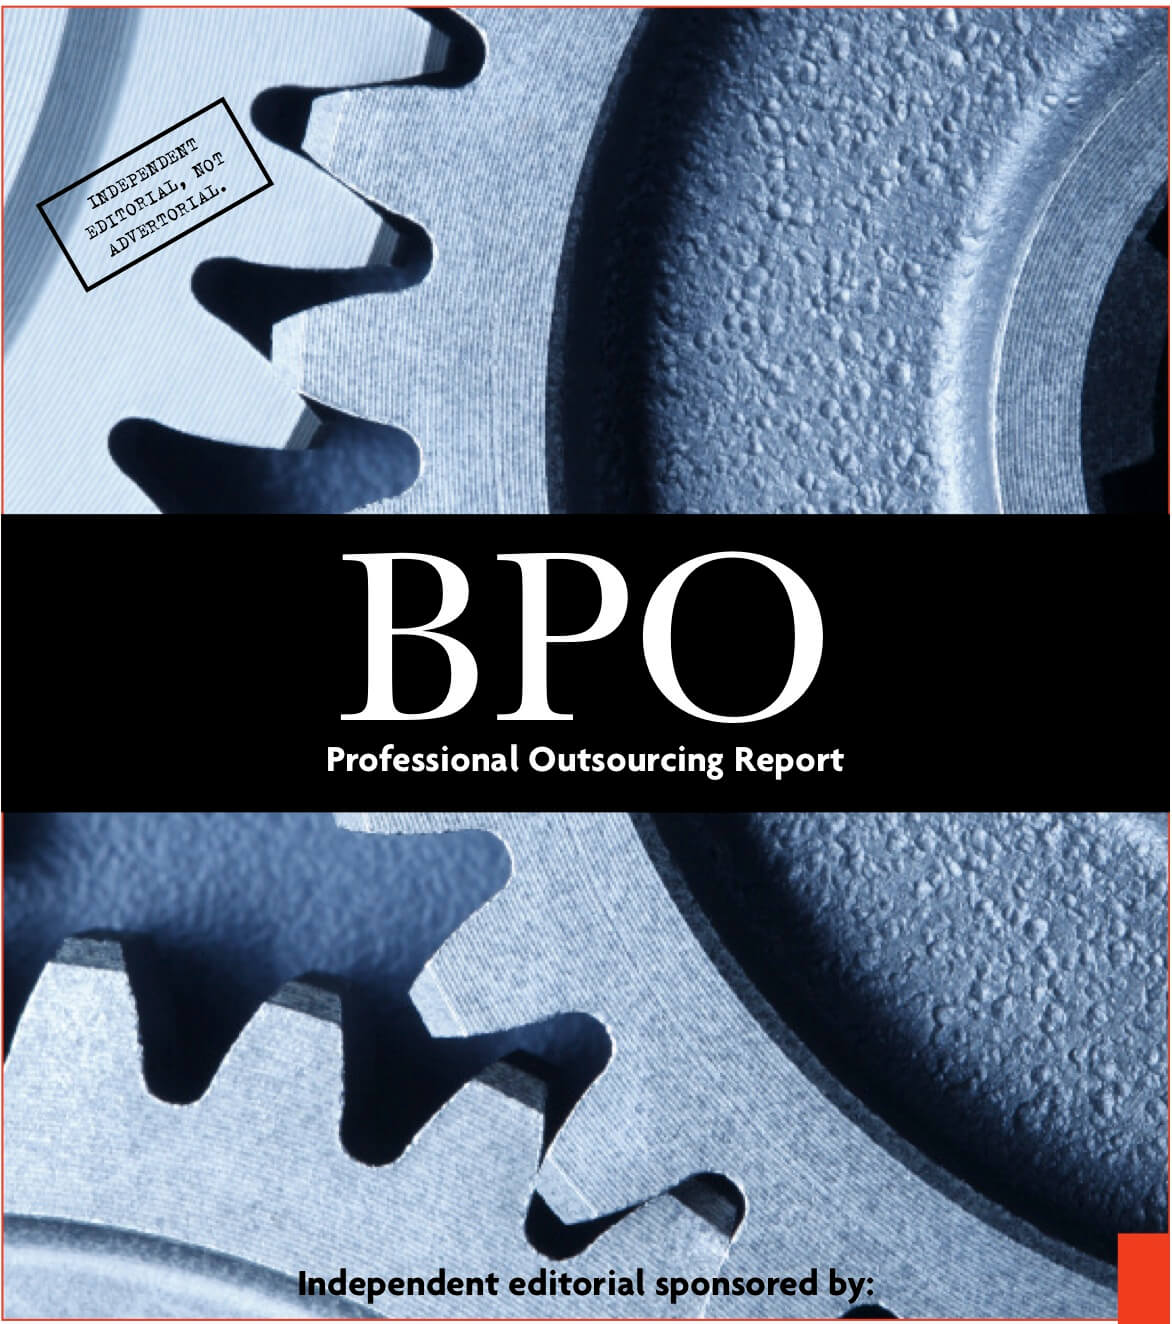 Professional Outsourcing report